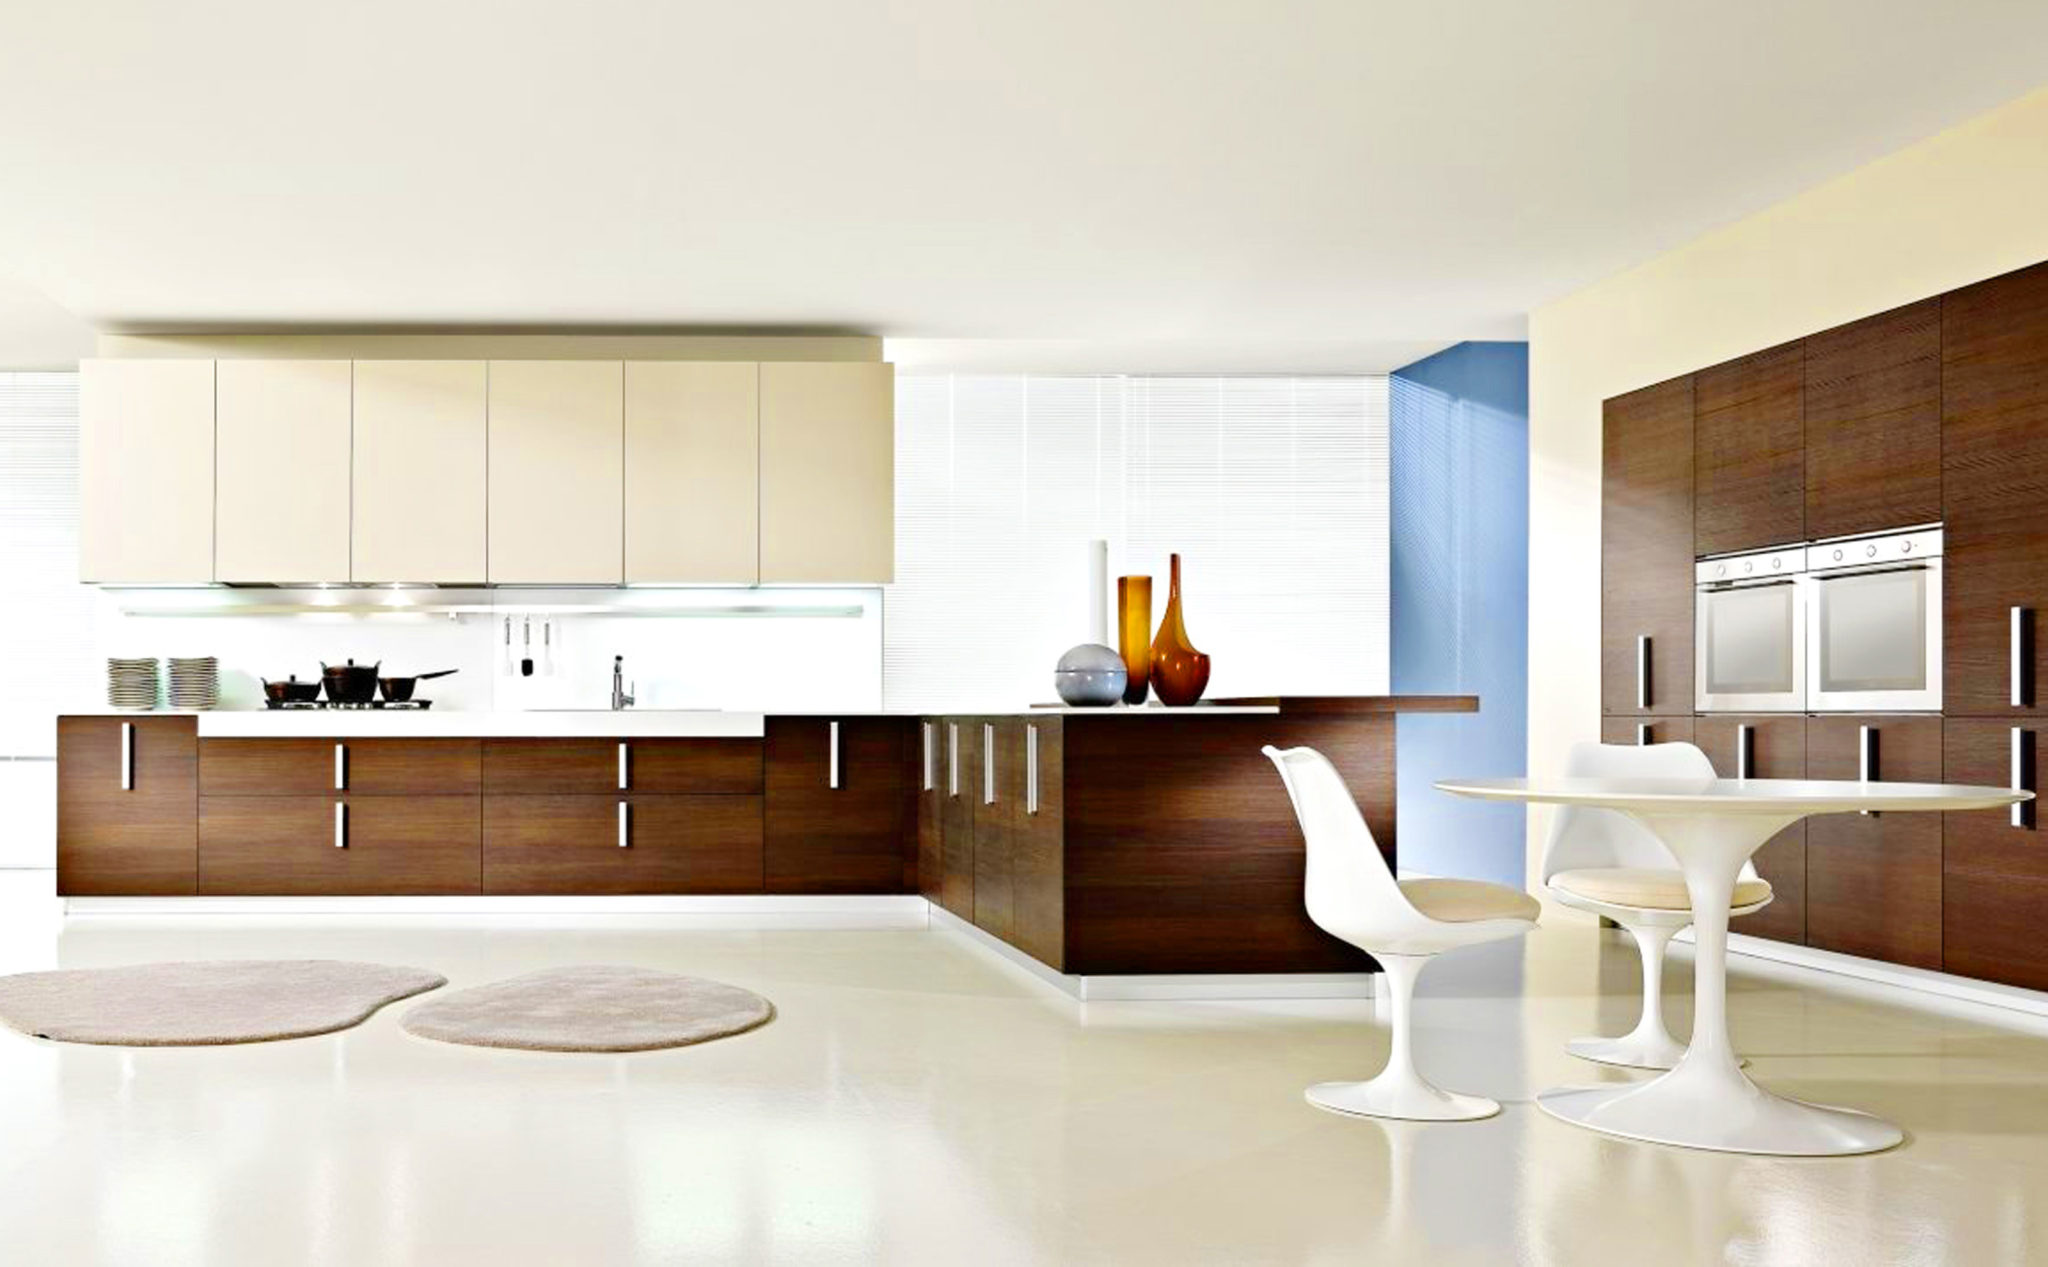 91 indoors furniture interior design uae luxury interior design blog designer dubai uae Kitchen design companies uae